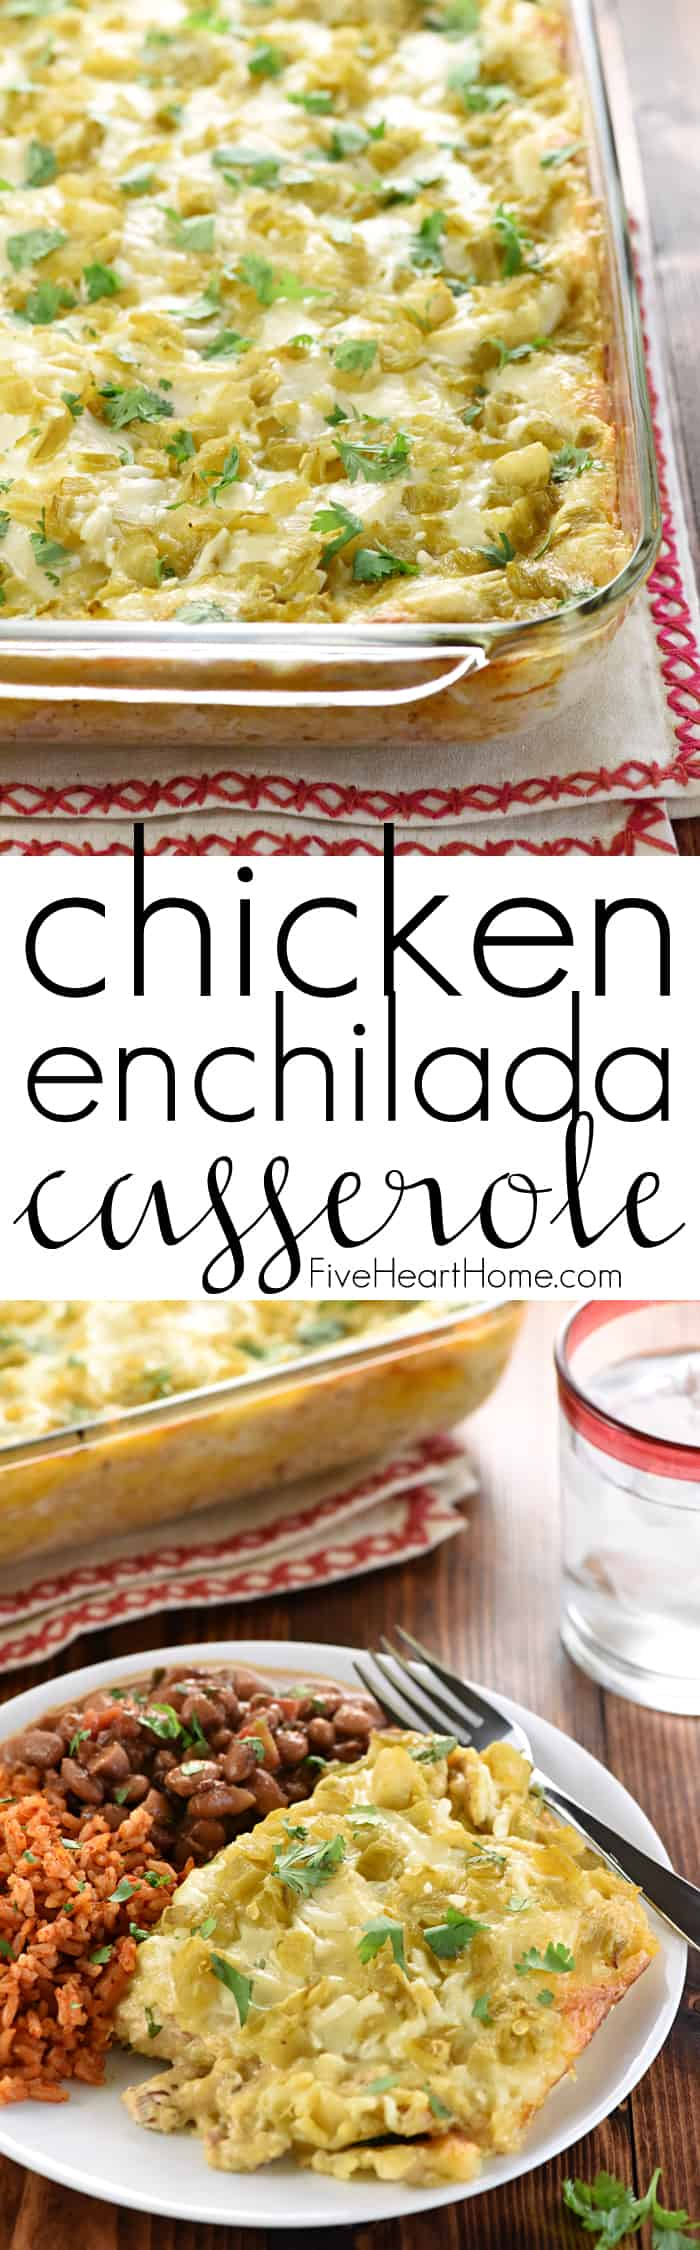 Chicken Enchilada Casserole ~ salsa verde, green chiles, and a creamy homemade sauce make this stacked Chicken Enchilada Casserole as delicious as the original without all the work of rolling them! | FiveHeartHome.com